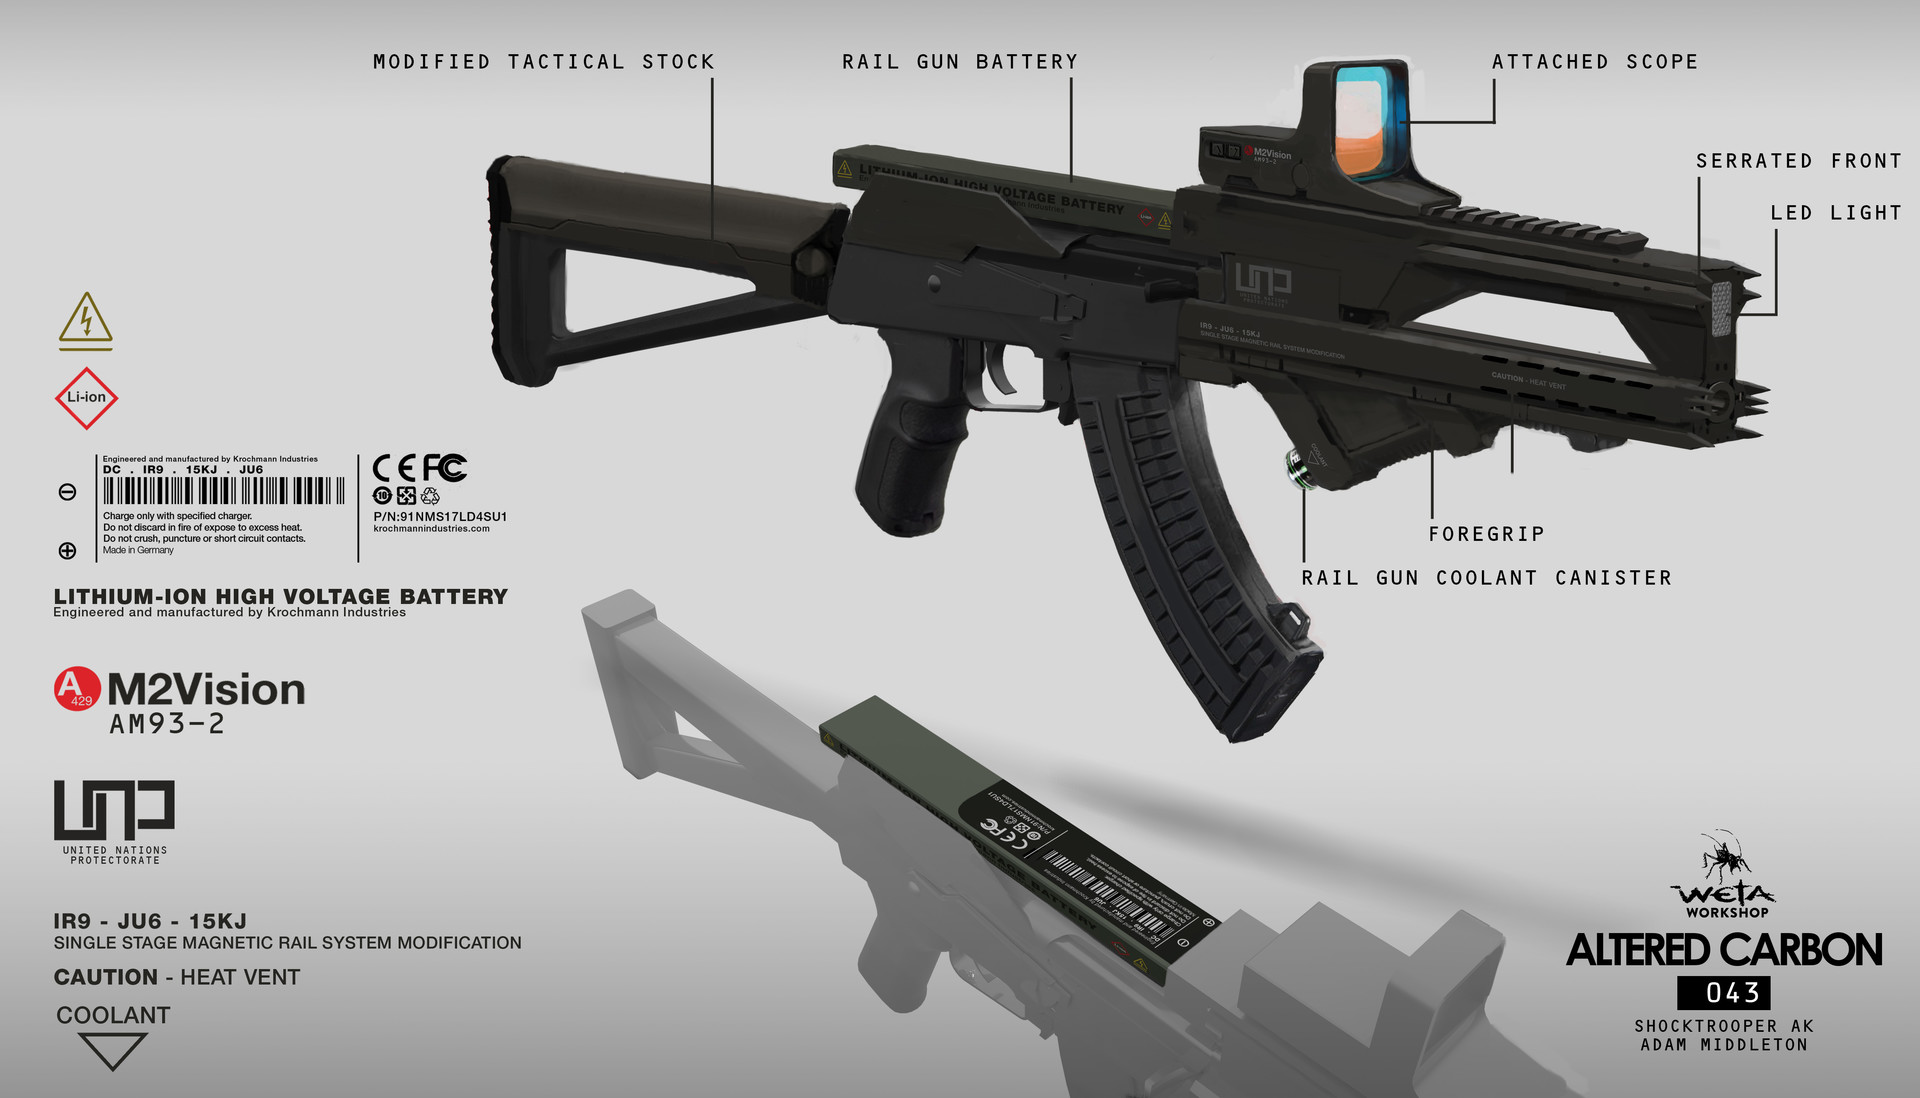 Weta workshop design studio 043 ac shocktrooter ak gun 02breakdown am